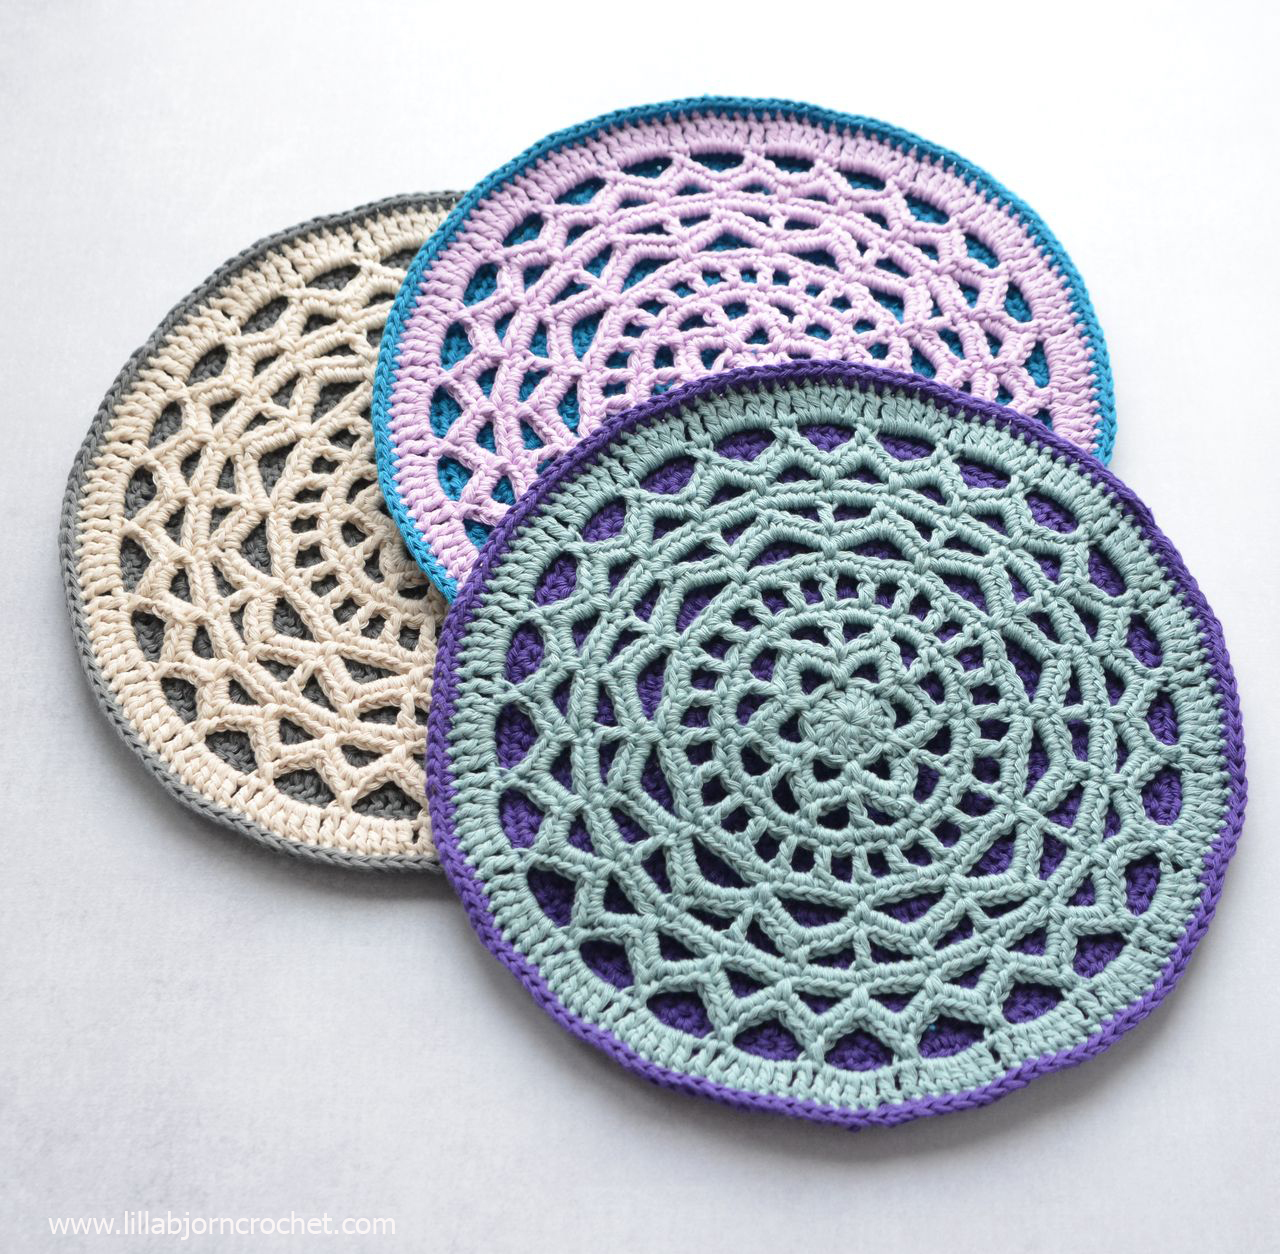 Geometric Mandala - easy crochet pattern by www.lillabjorncrochet.com